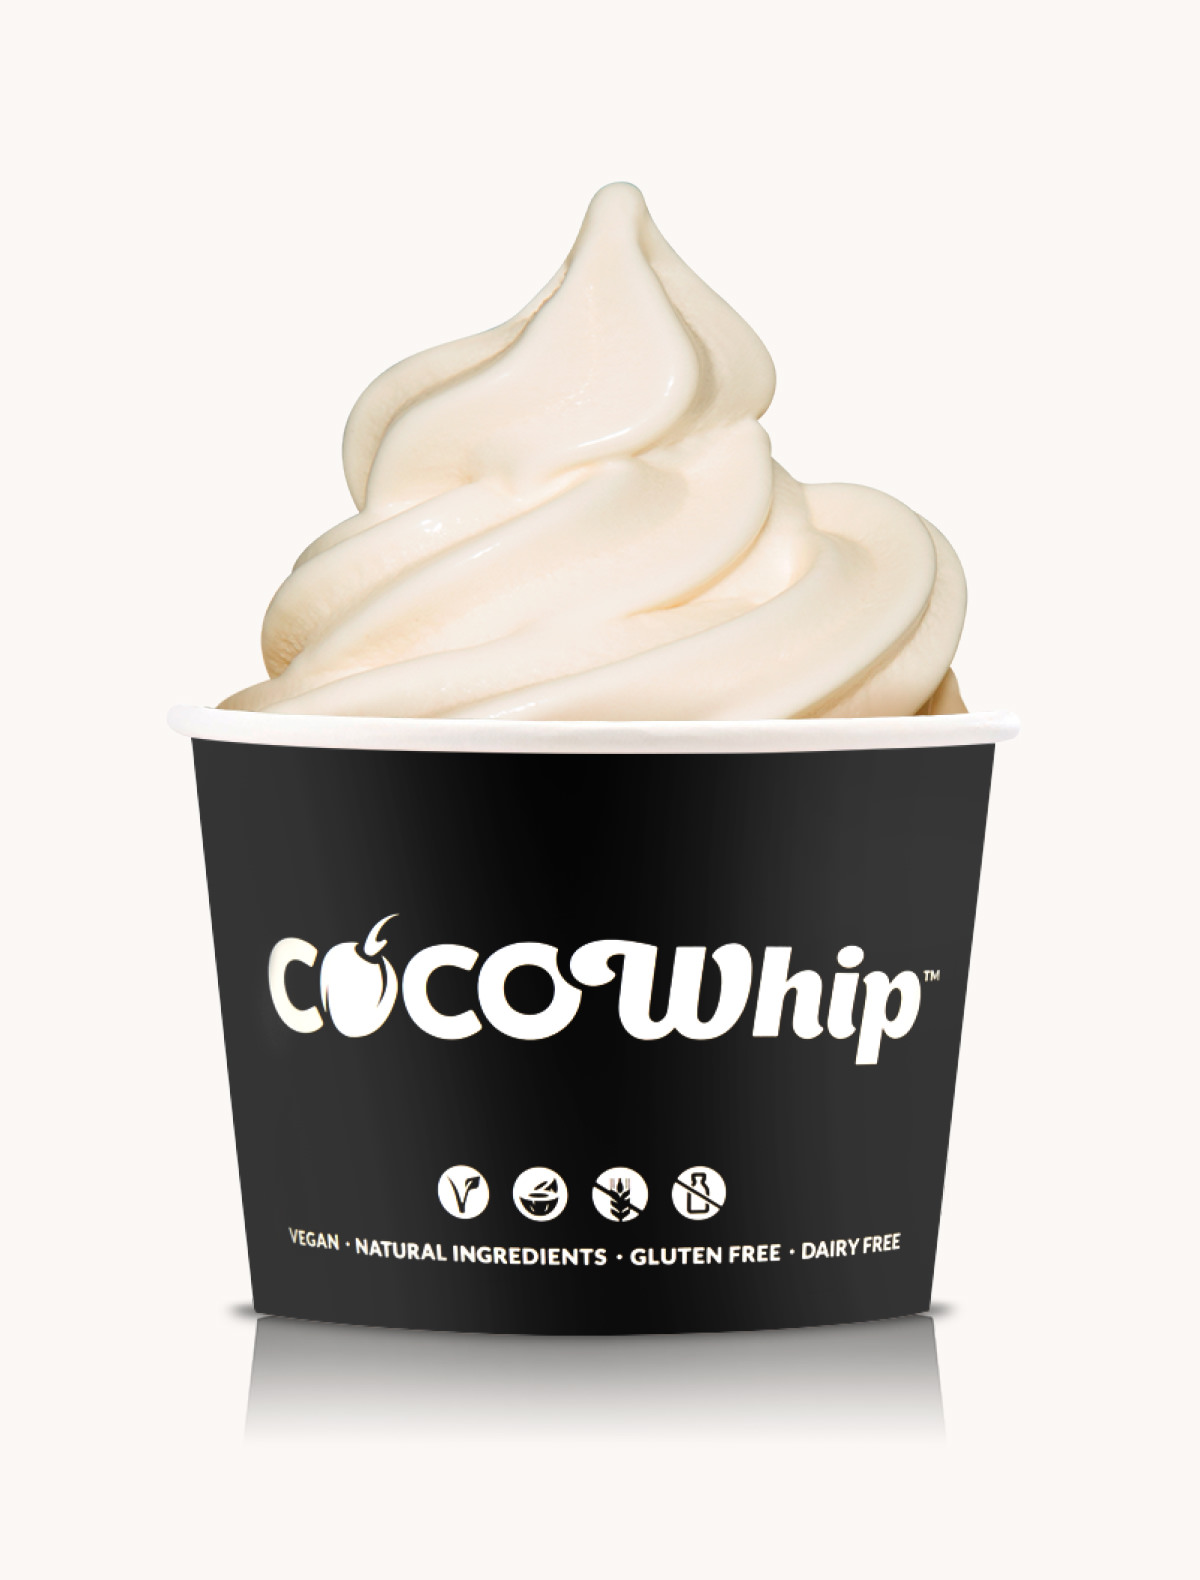 An image of the Original Coconut flavoured Cocowhip